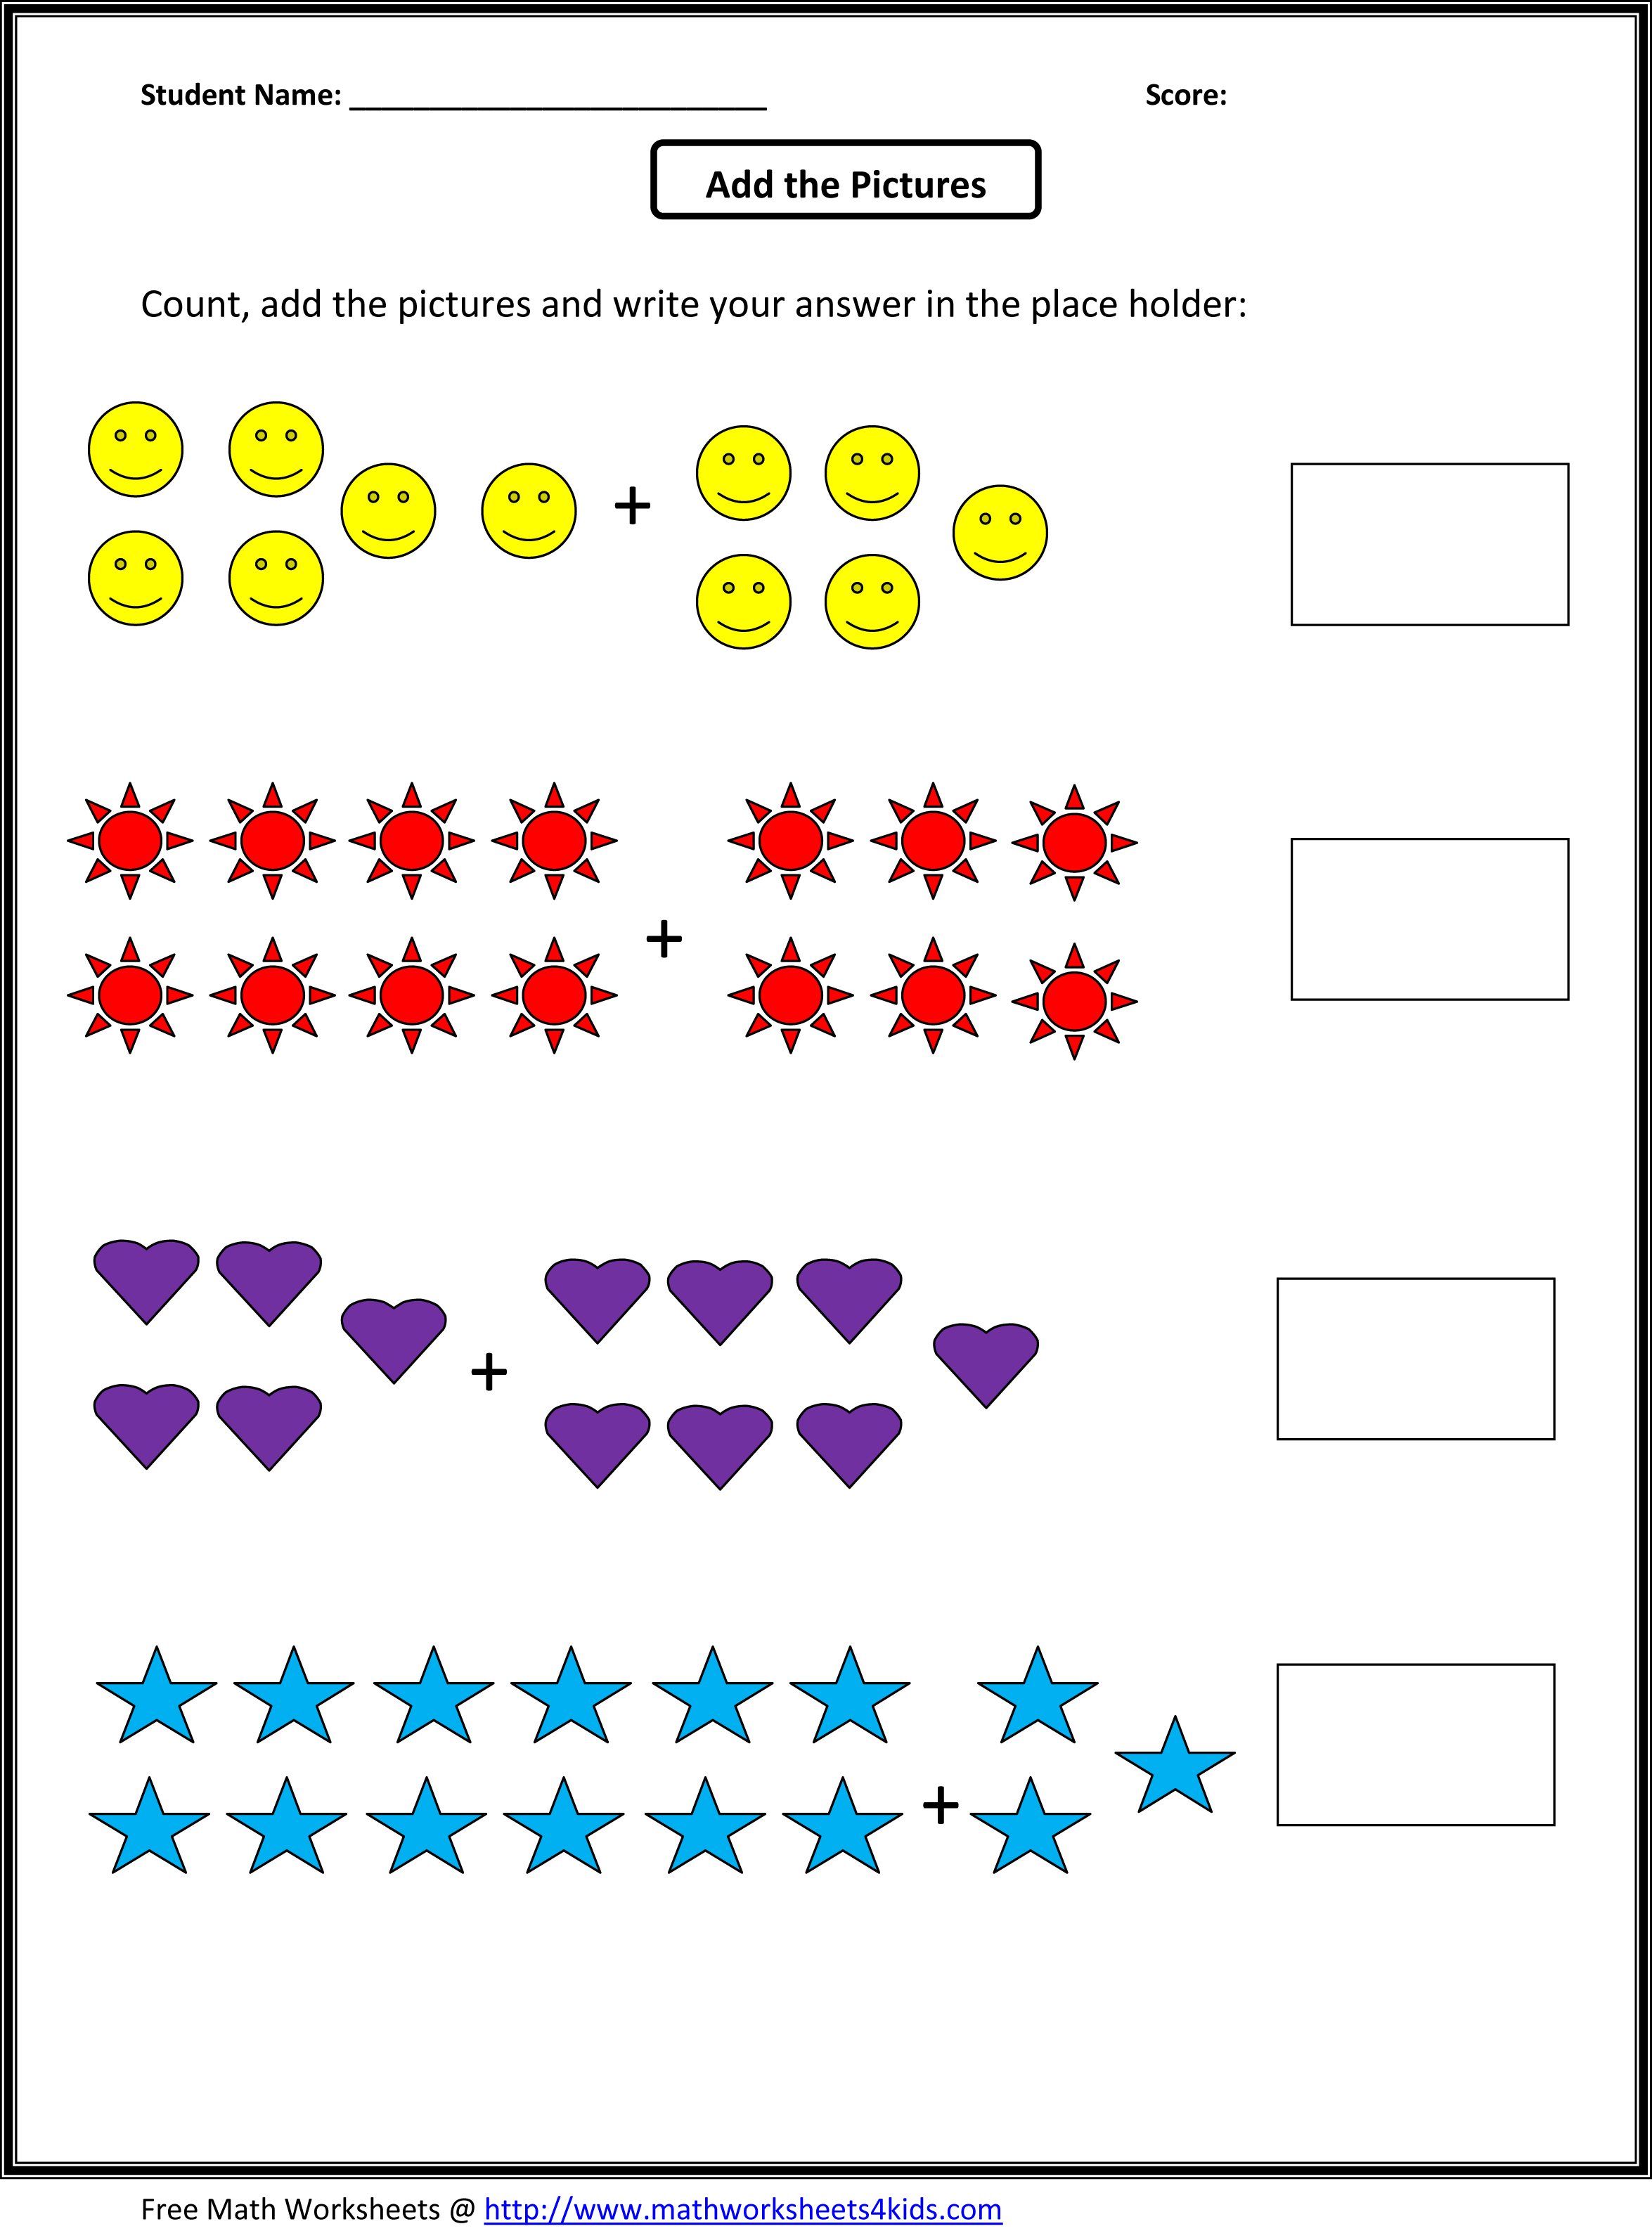 Proatmealus  Mesmerizing Grade  Maths Worksheet  Reocurent With Outstanding Math Worksheets For St Grade Free  Reocurent With Comely Greater Than Less Than Equal To Worksheets St Grade Also Writing Practise Worksheets In Addition Rhyming Word Worksheets For First Grade And School Worksheets For St Grade As Well As Free Printable Suffix Worksheets Additionally Fractions Problem Solving Worksheets From Reocurentcom With Proatmealus  Outstanding Grade  Maths Worksheet  Reocurent With Comely Math Worksheets For St Grade Free  Reocurent And Mesmerizing Greater Than Less Than Equal To Worksheets St Grade Also Writing Practise Worksheets In Addition Rhyming Word Worksheets For First Grade From Reocurentcom